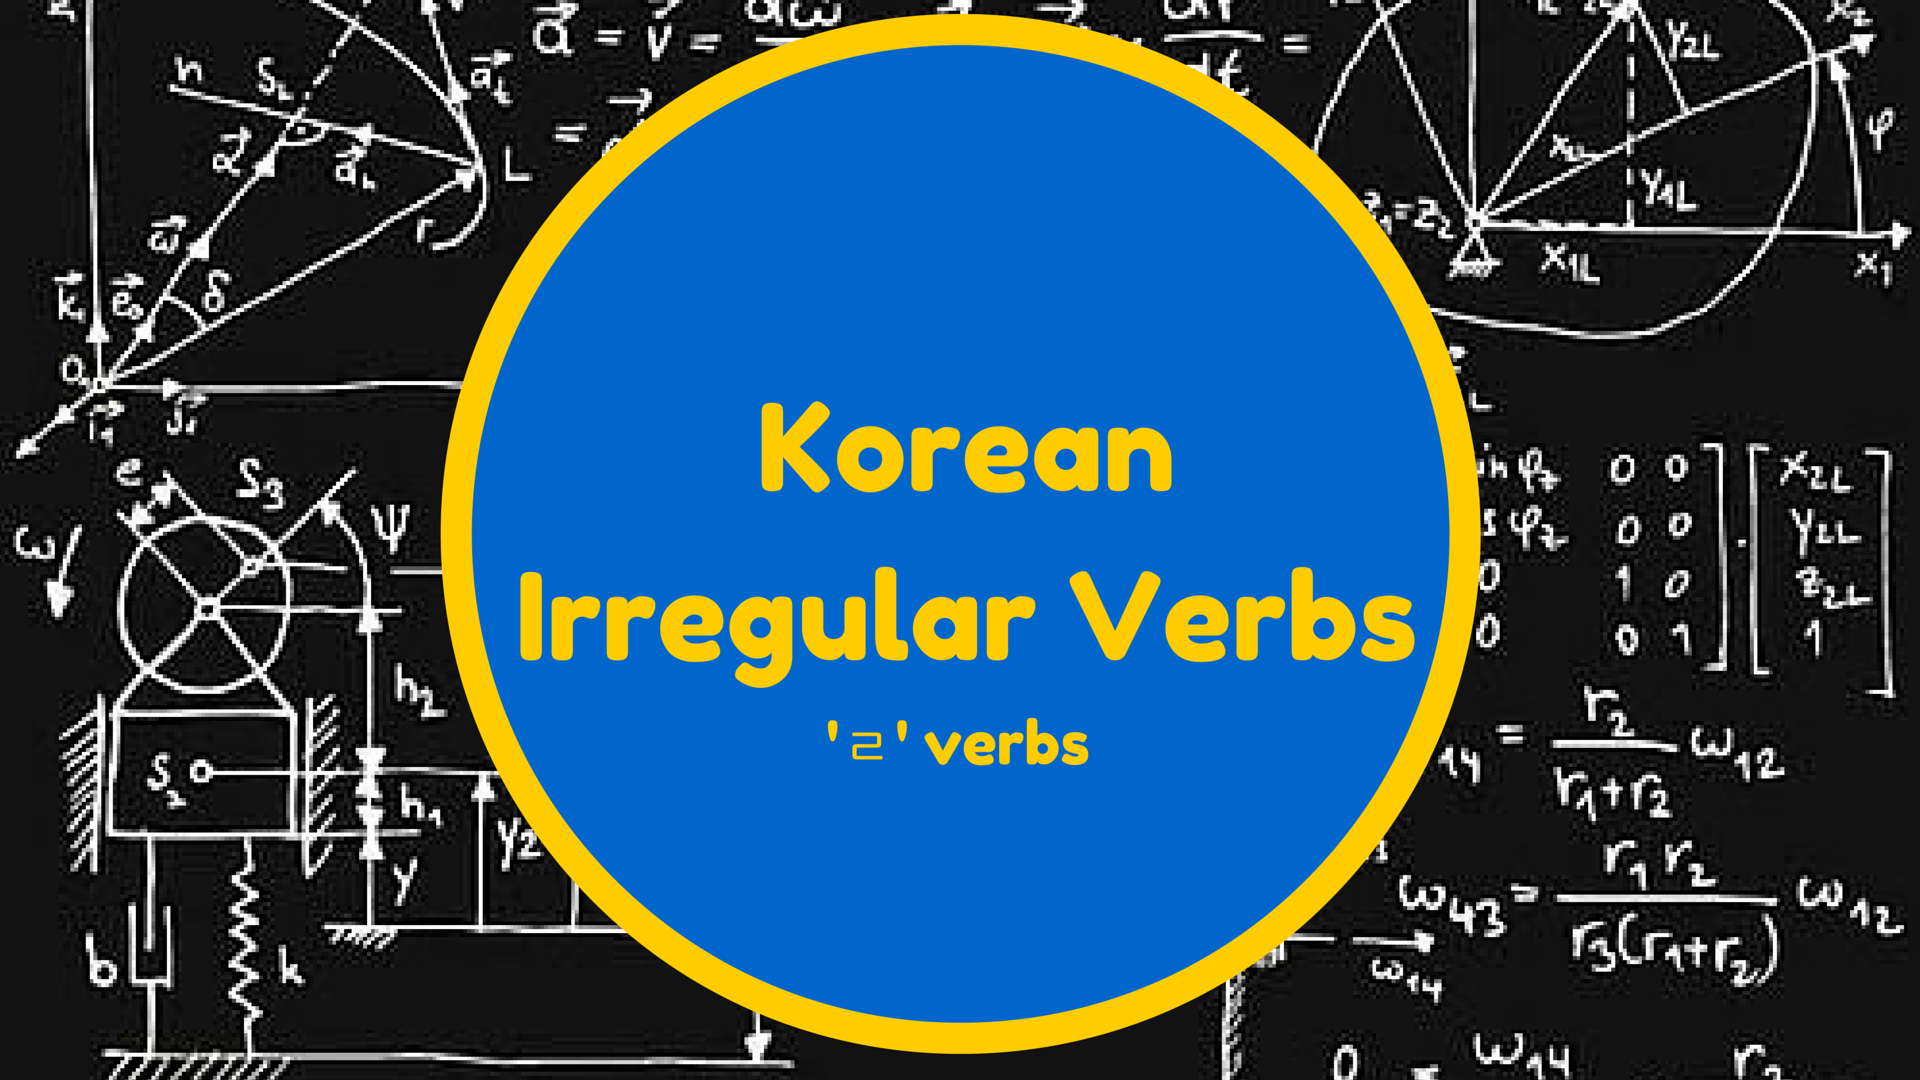 This next set of irregular verbs in this series on Korean irregular verbs are the  ㄹ irregular verbs. This group is known as such because the verb stem ends in ㄹ. Among these verbs are: 만들다 or 살다. Just keep a few simple in mind when using these verbs.